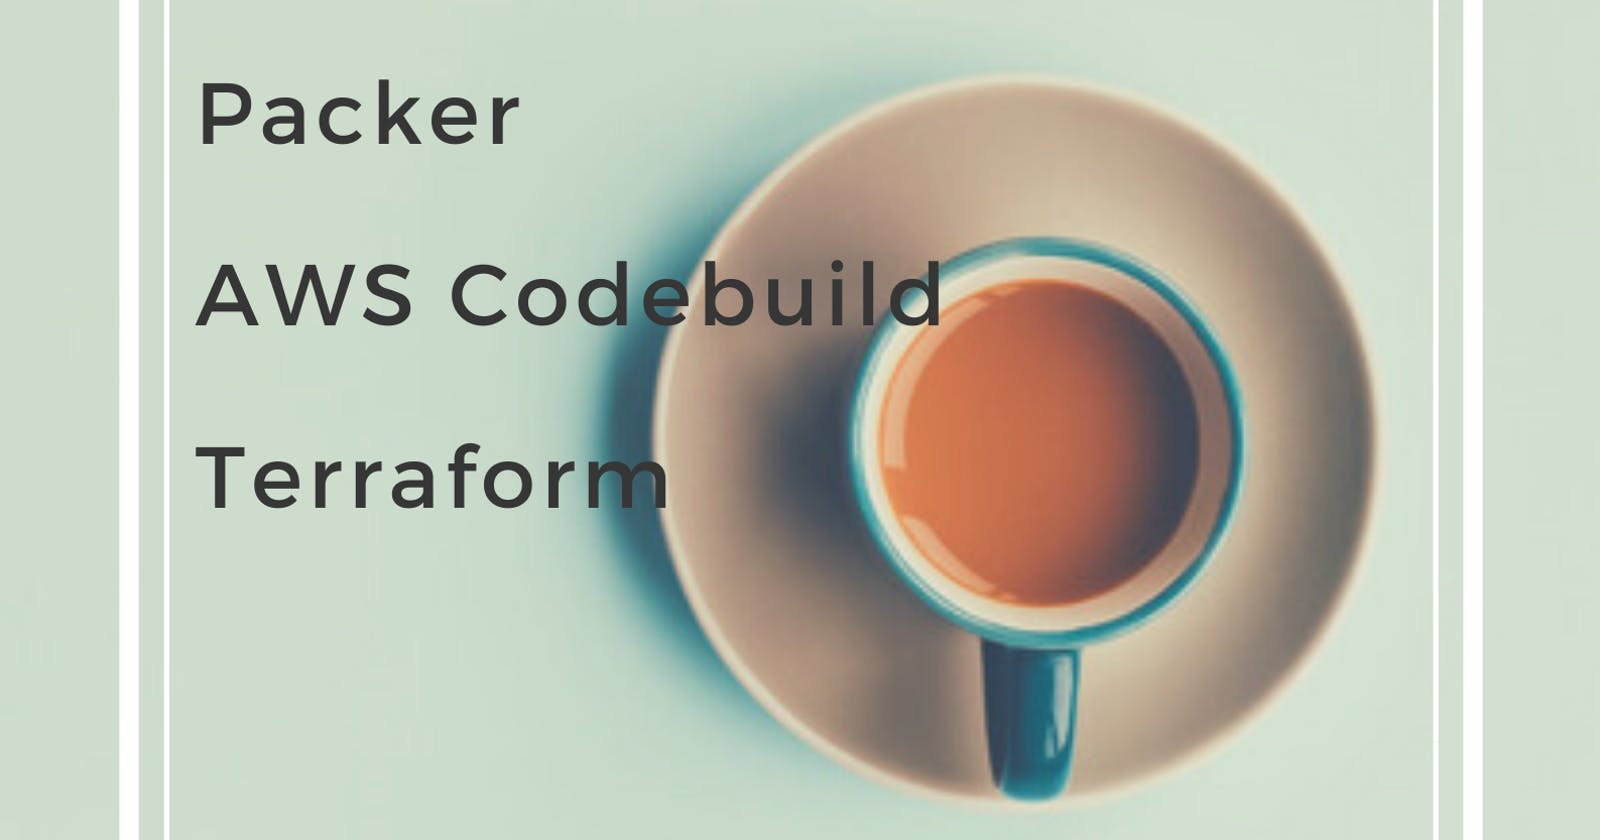 How to keep AMI up-to-date by using Packer, AWS Codebuild, and Terraform | Part 2.